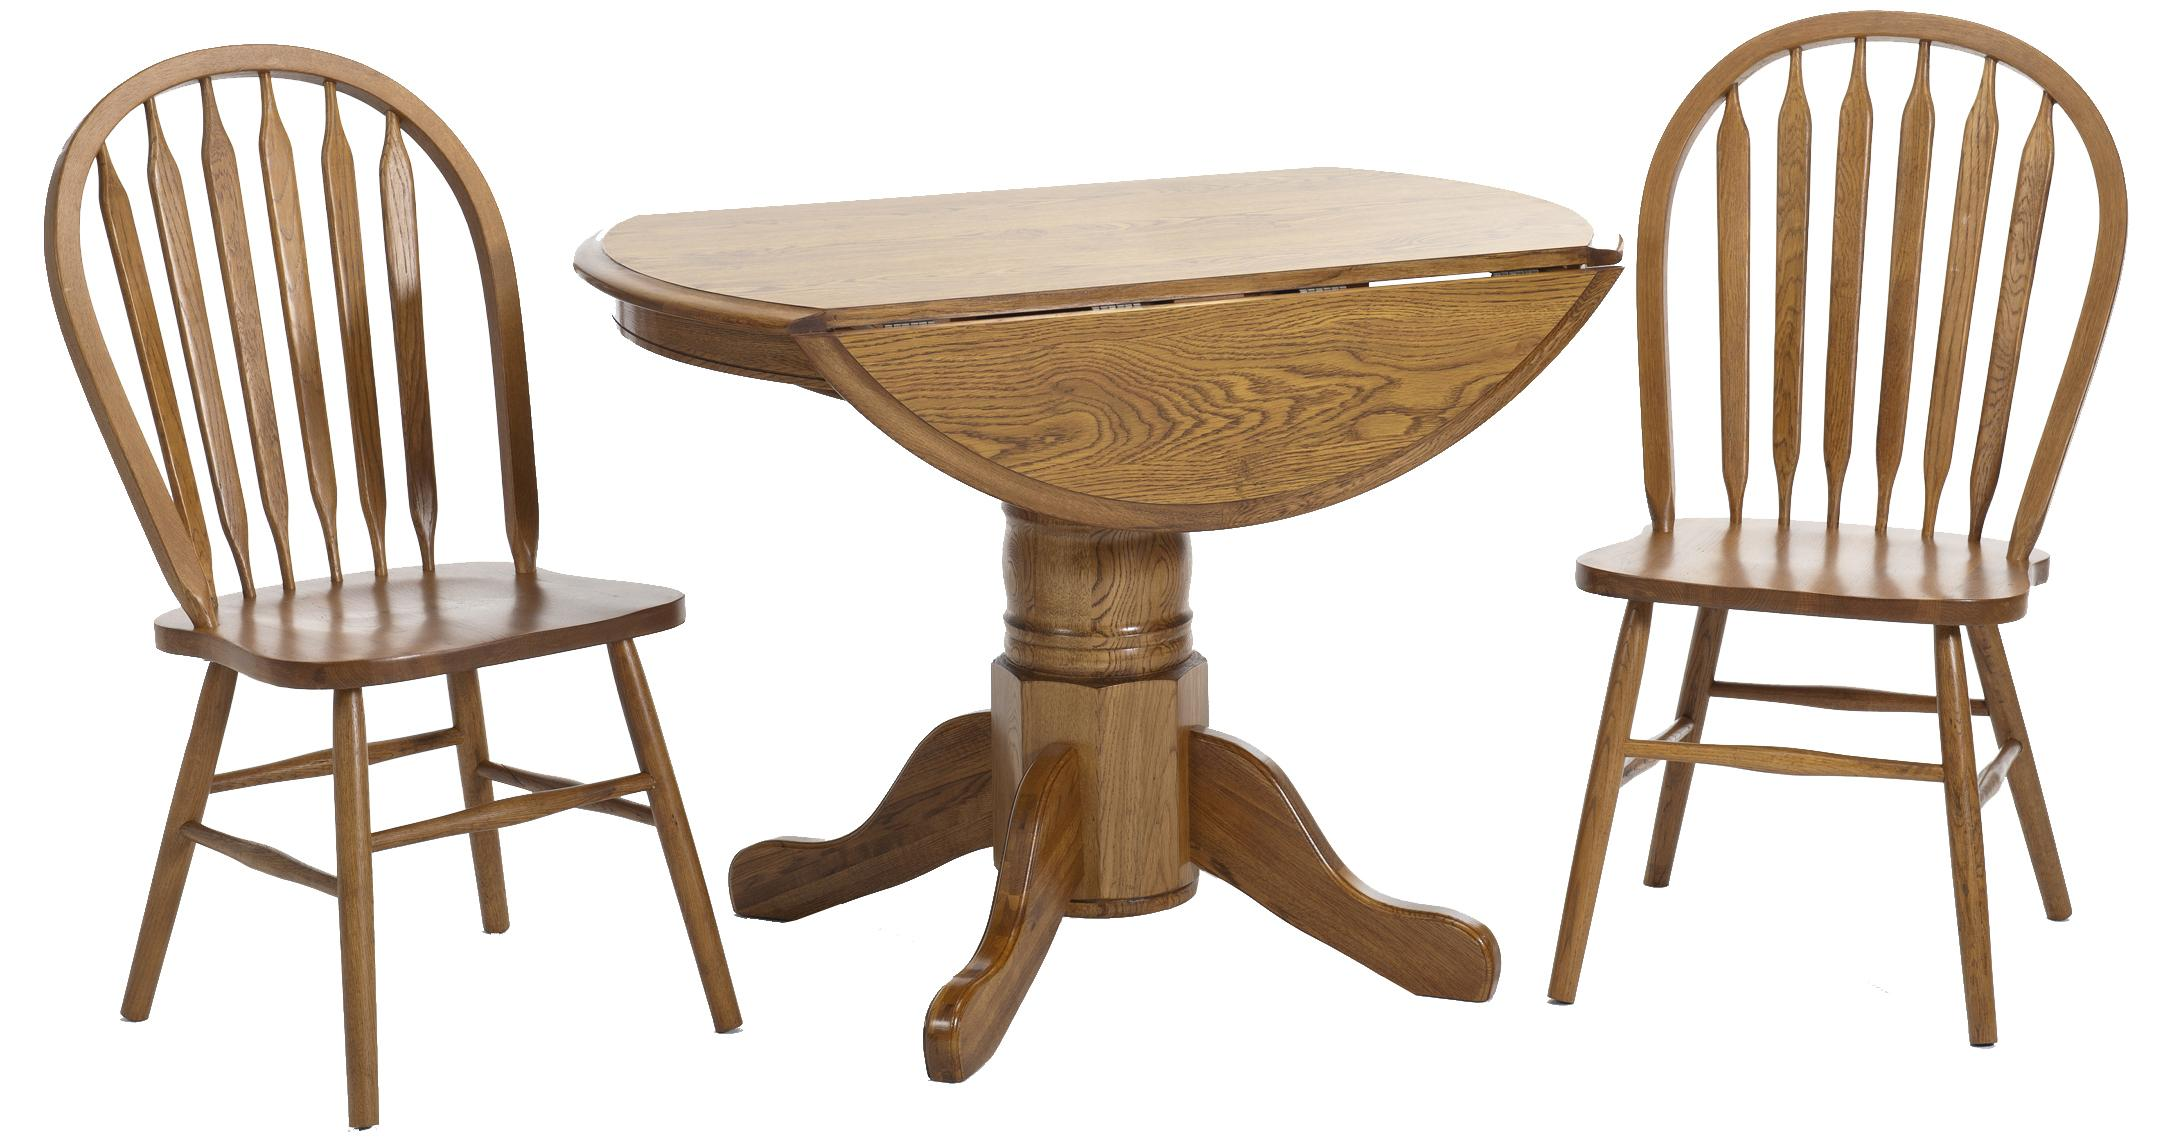 Classic Oak 3 Piece Dining Set by Intercon at Dinette Depot